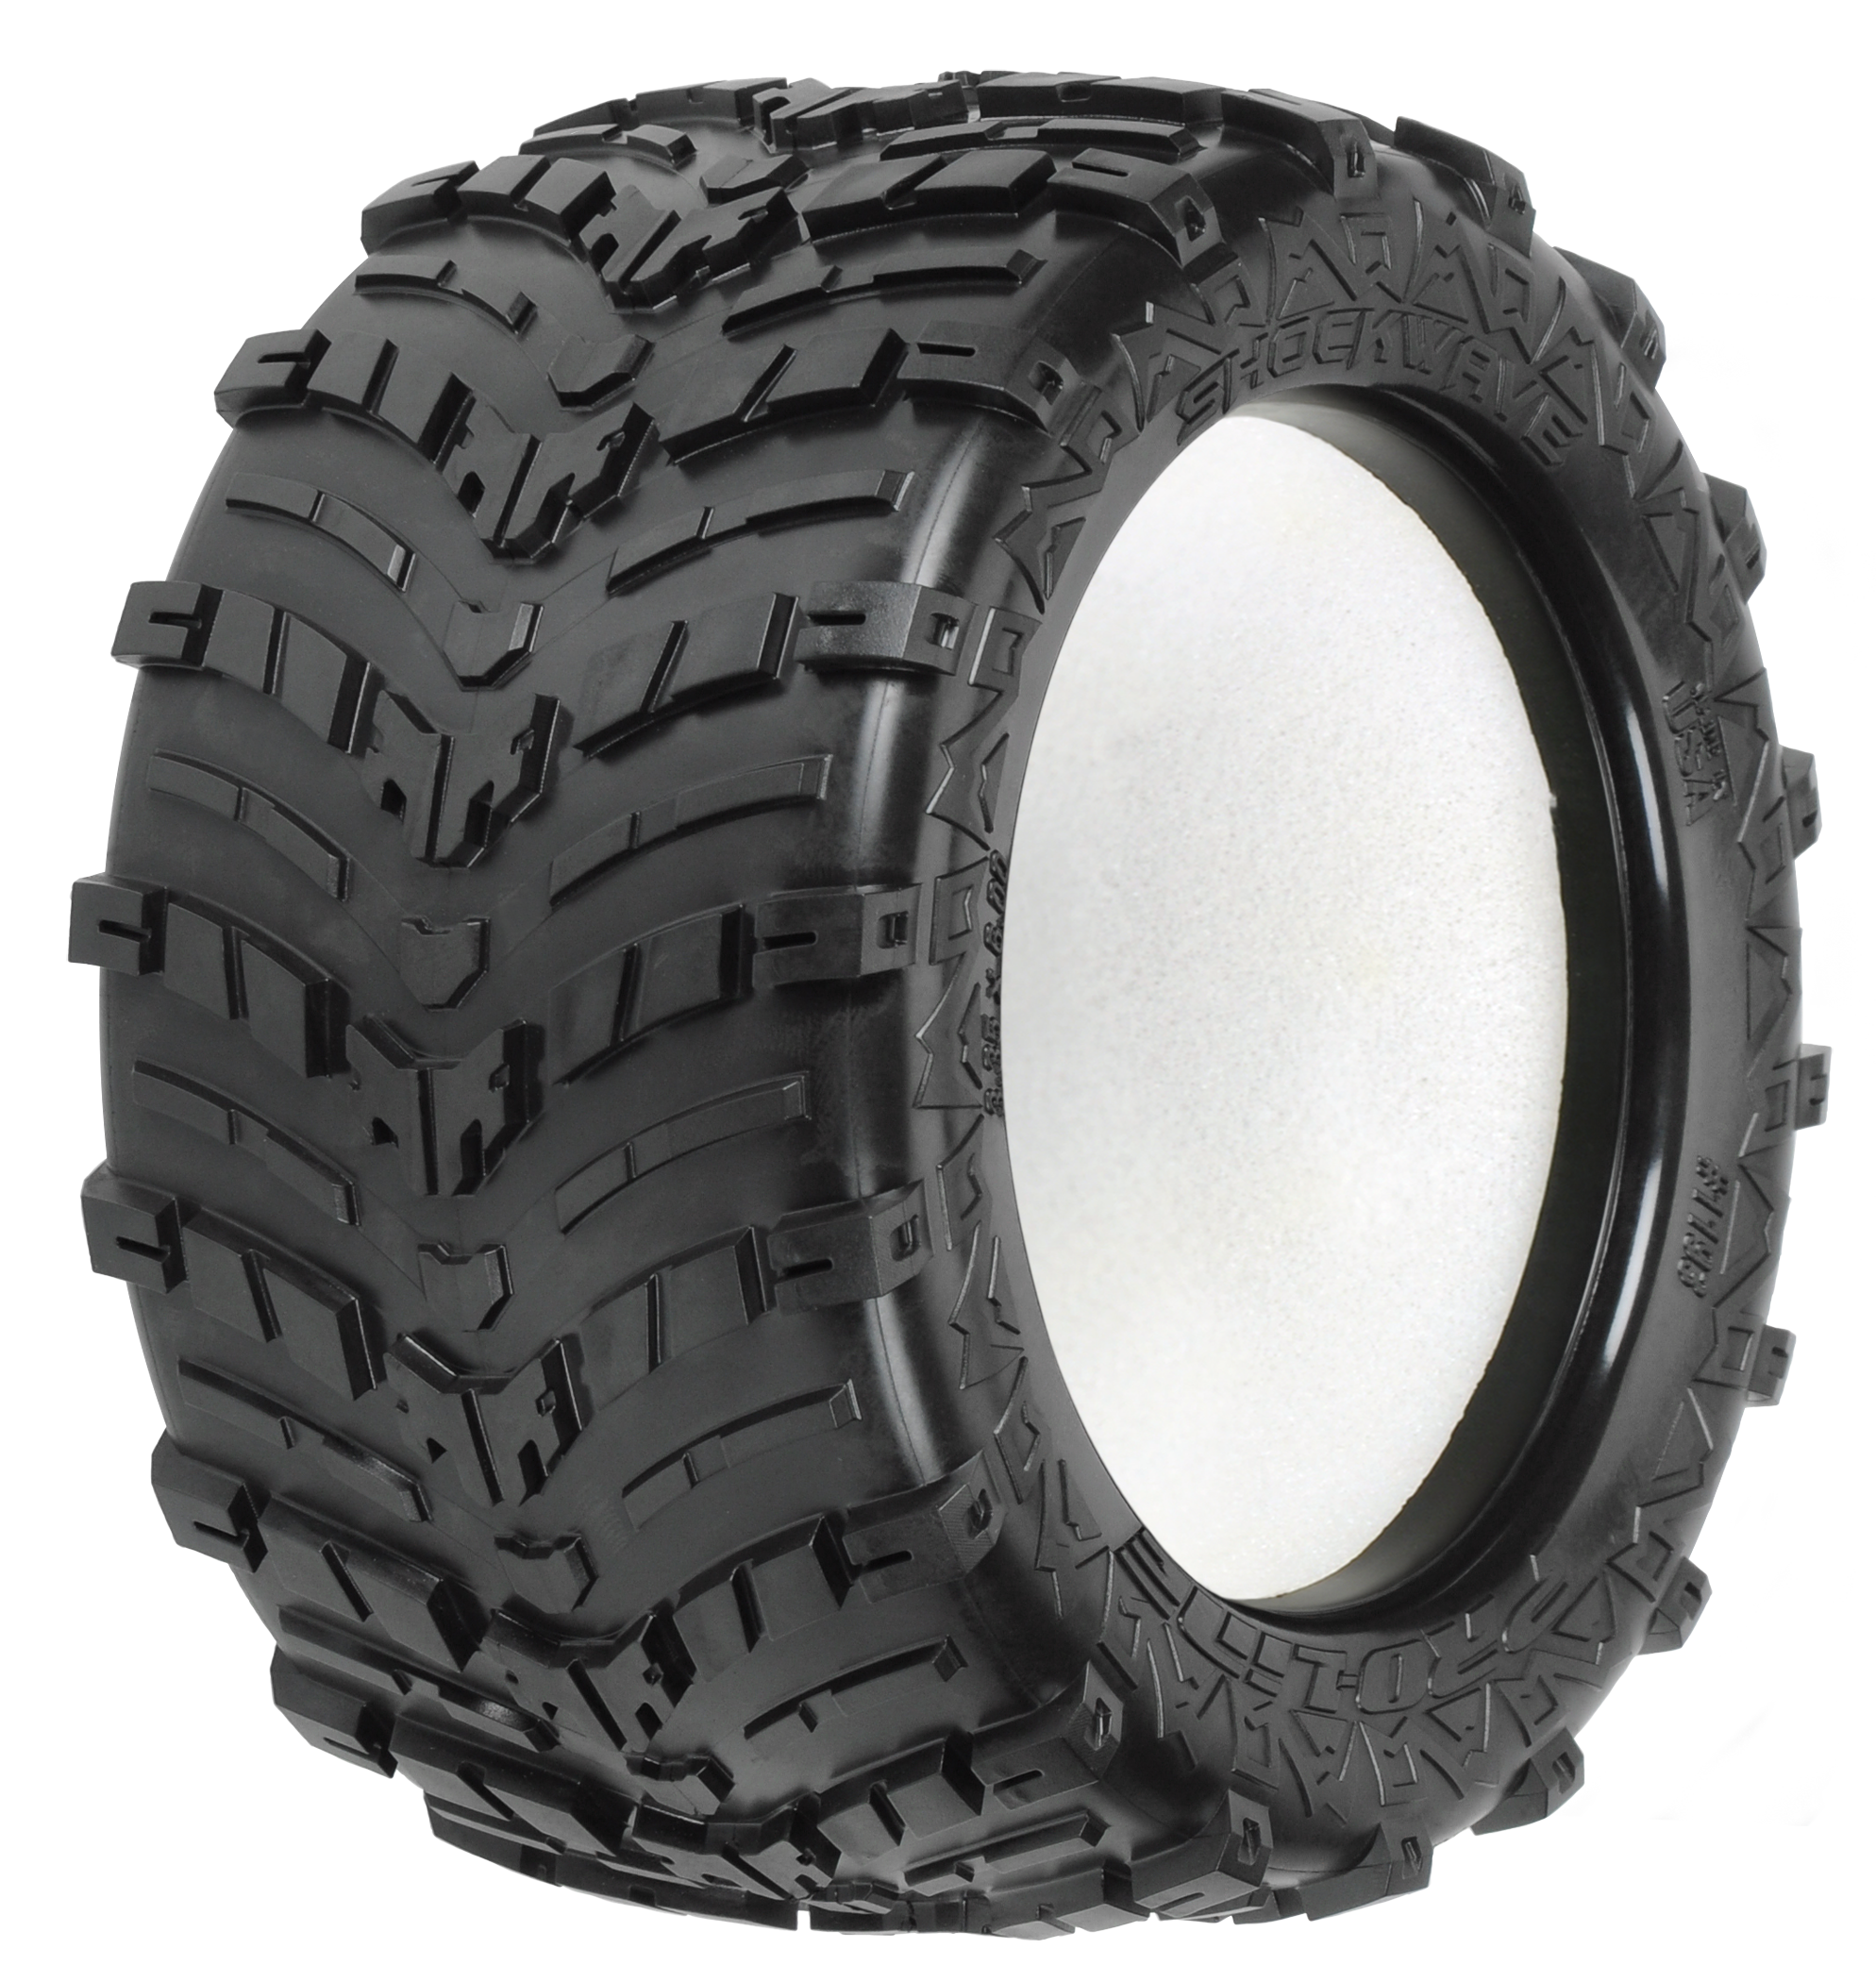 Pro Line Tires Monstertruck Parent Directory 00 Tires Monstertruck Zip image #473